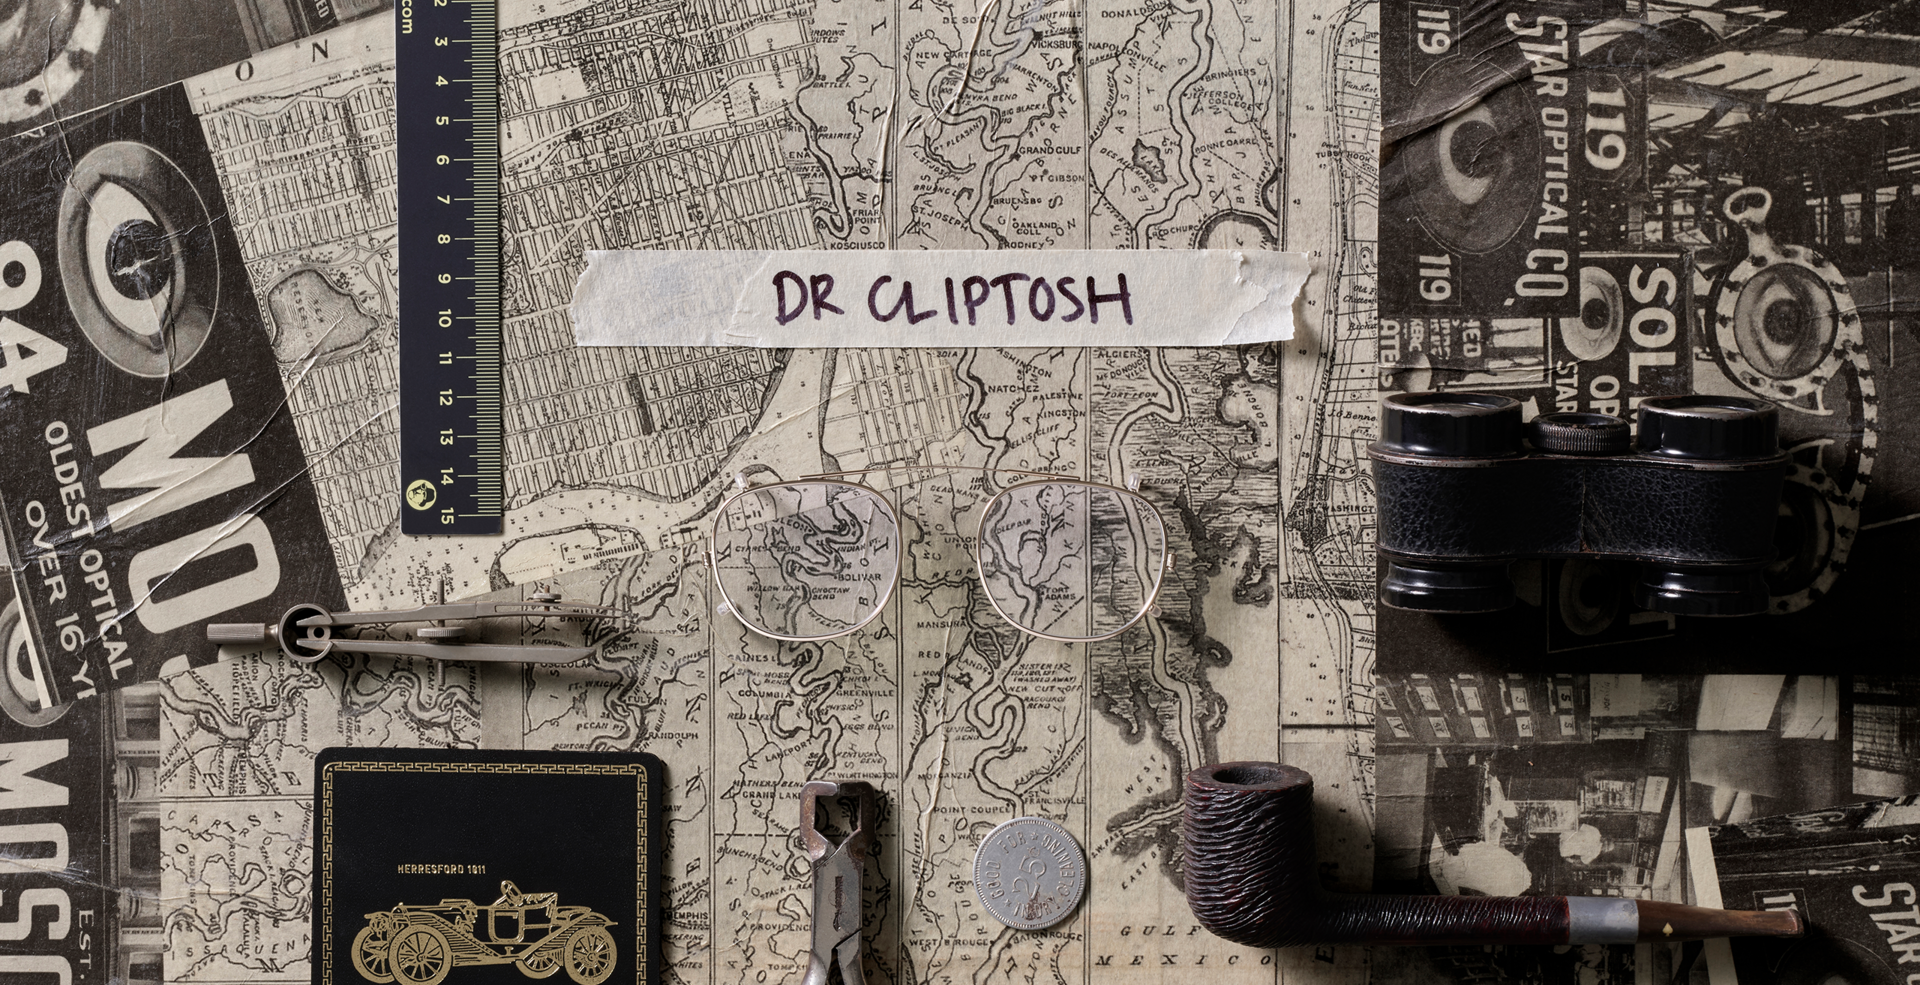 DR CLIPTOSH